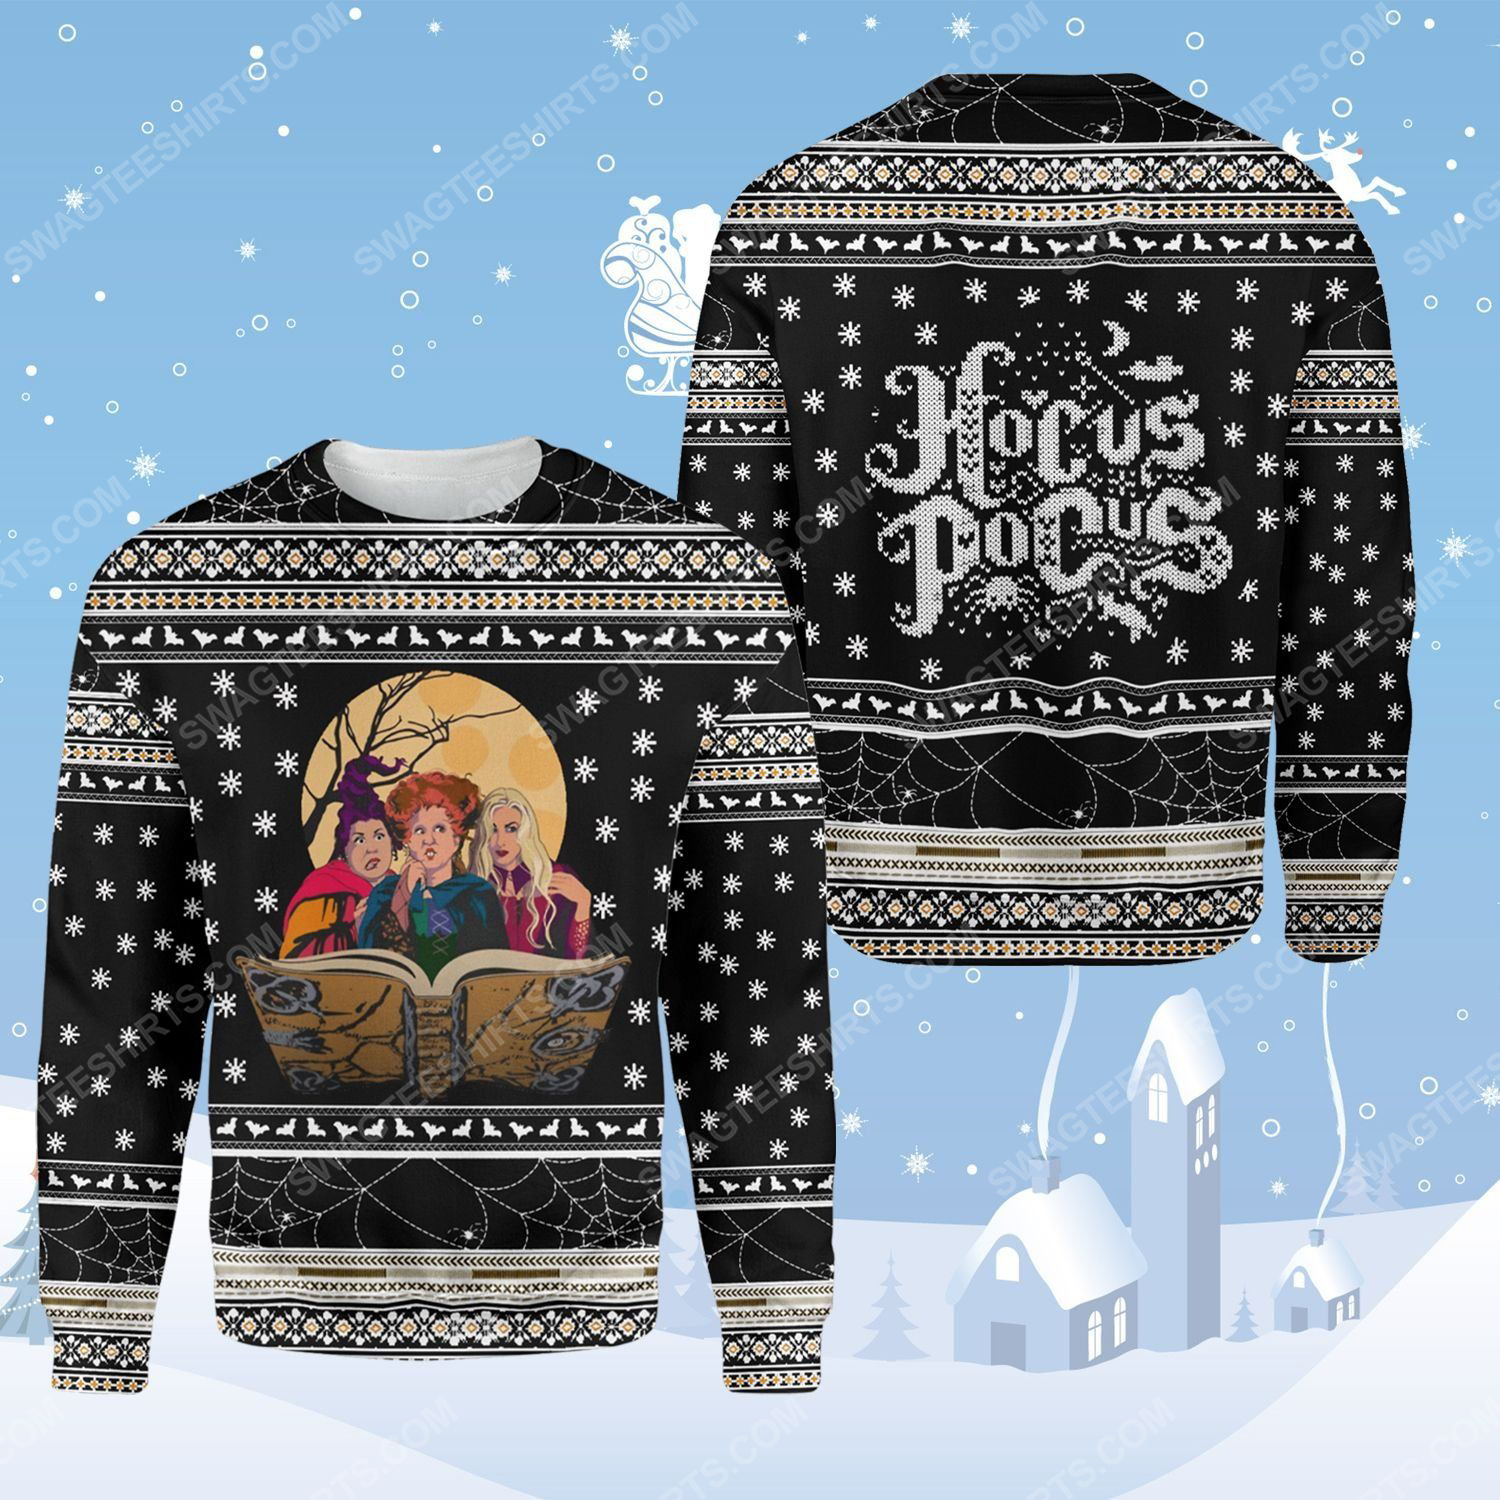 Hocus pocus witches ugly christmas sweater